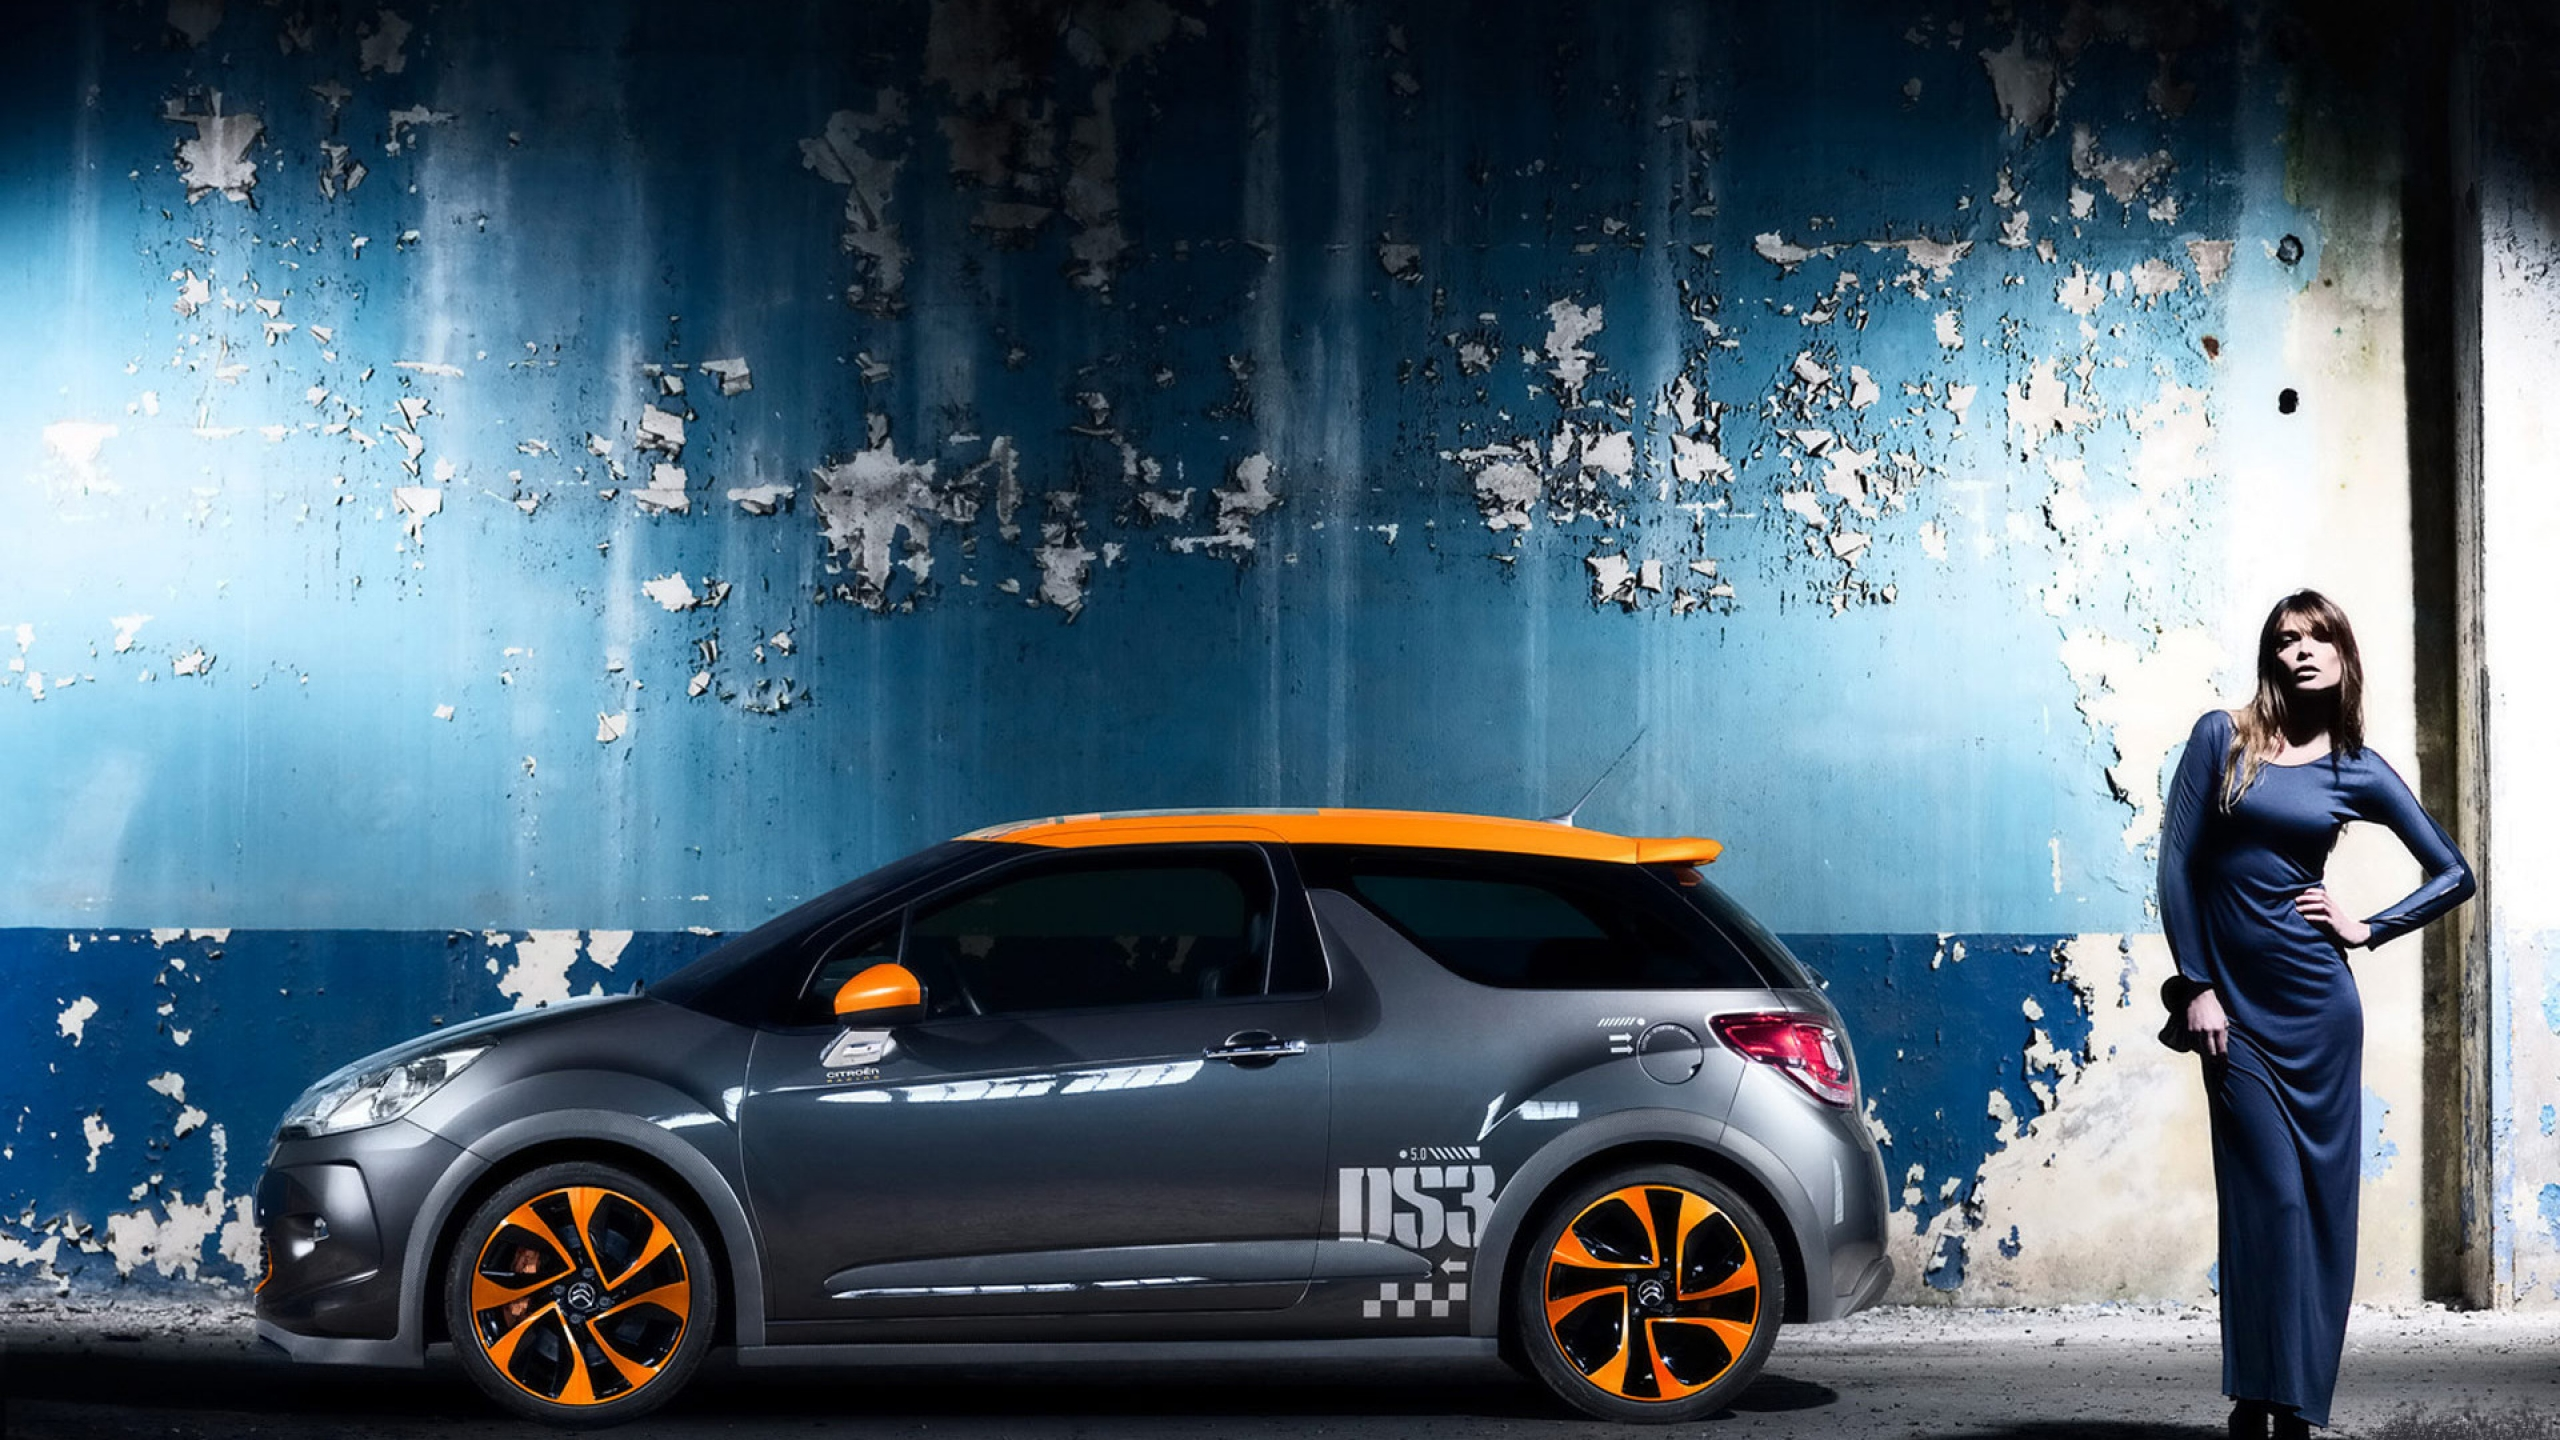 cool citroen ds3 side angle 2560x1440 wallpaper 3508